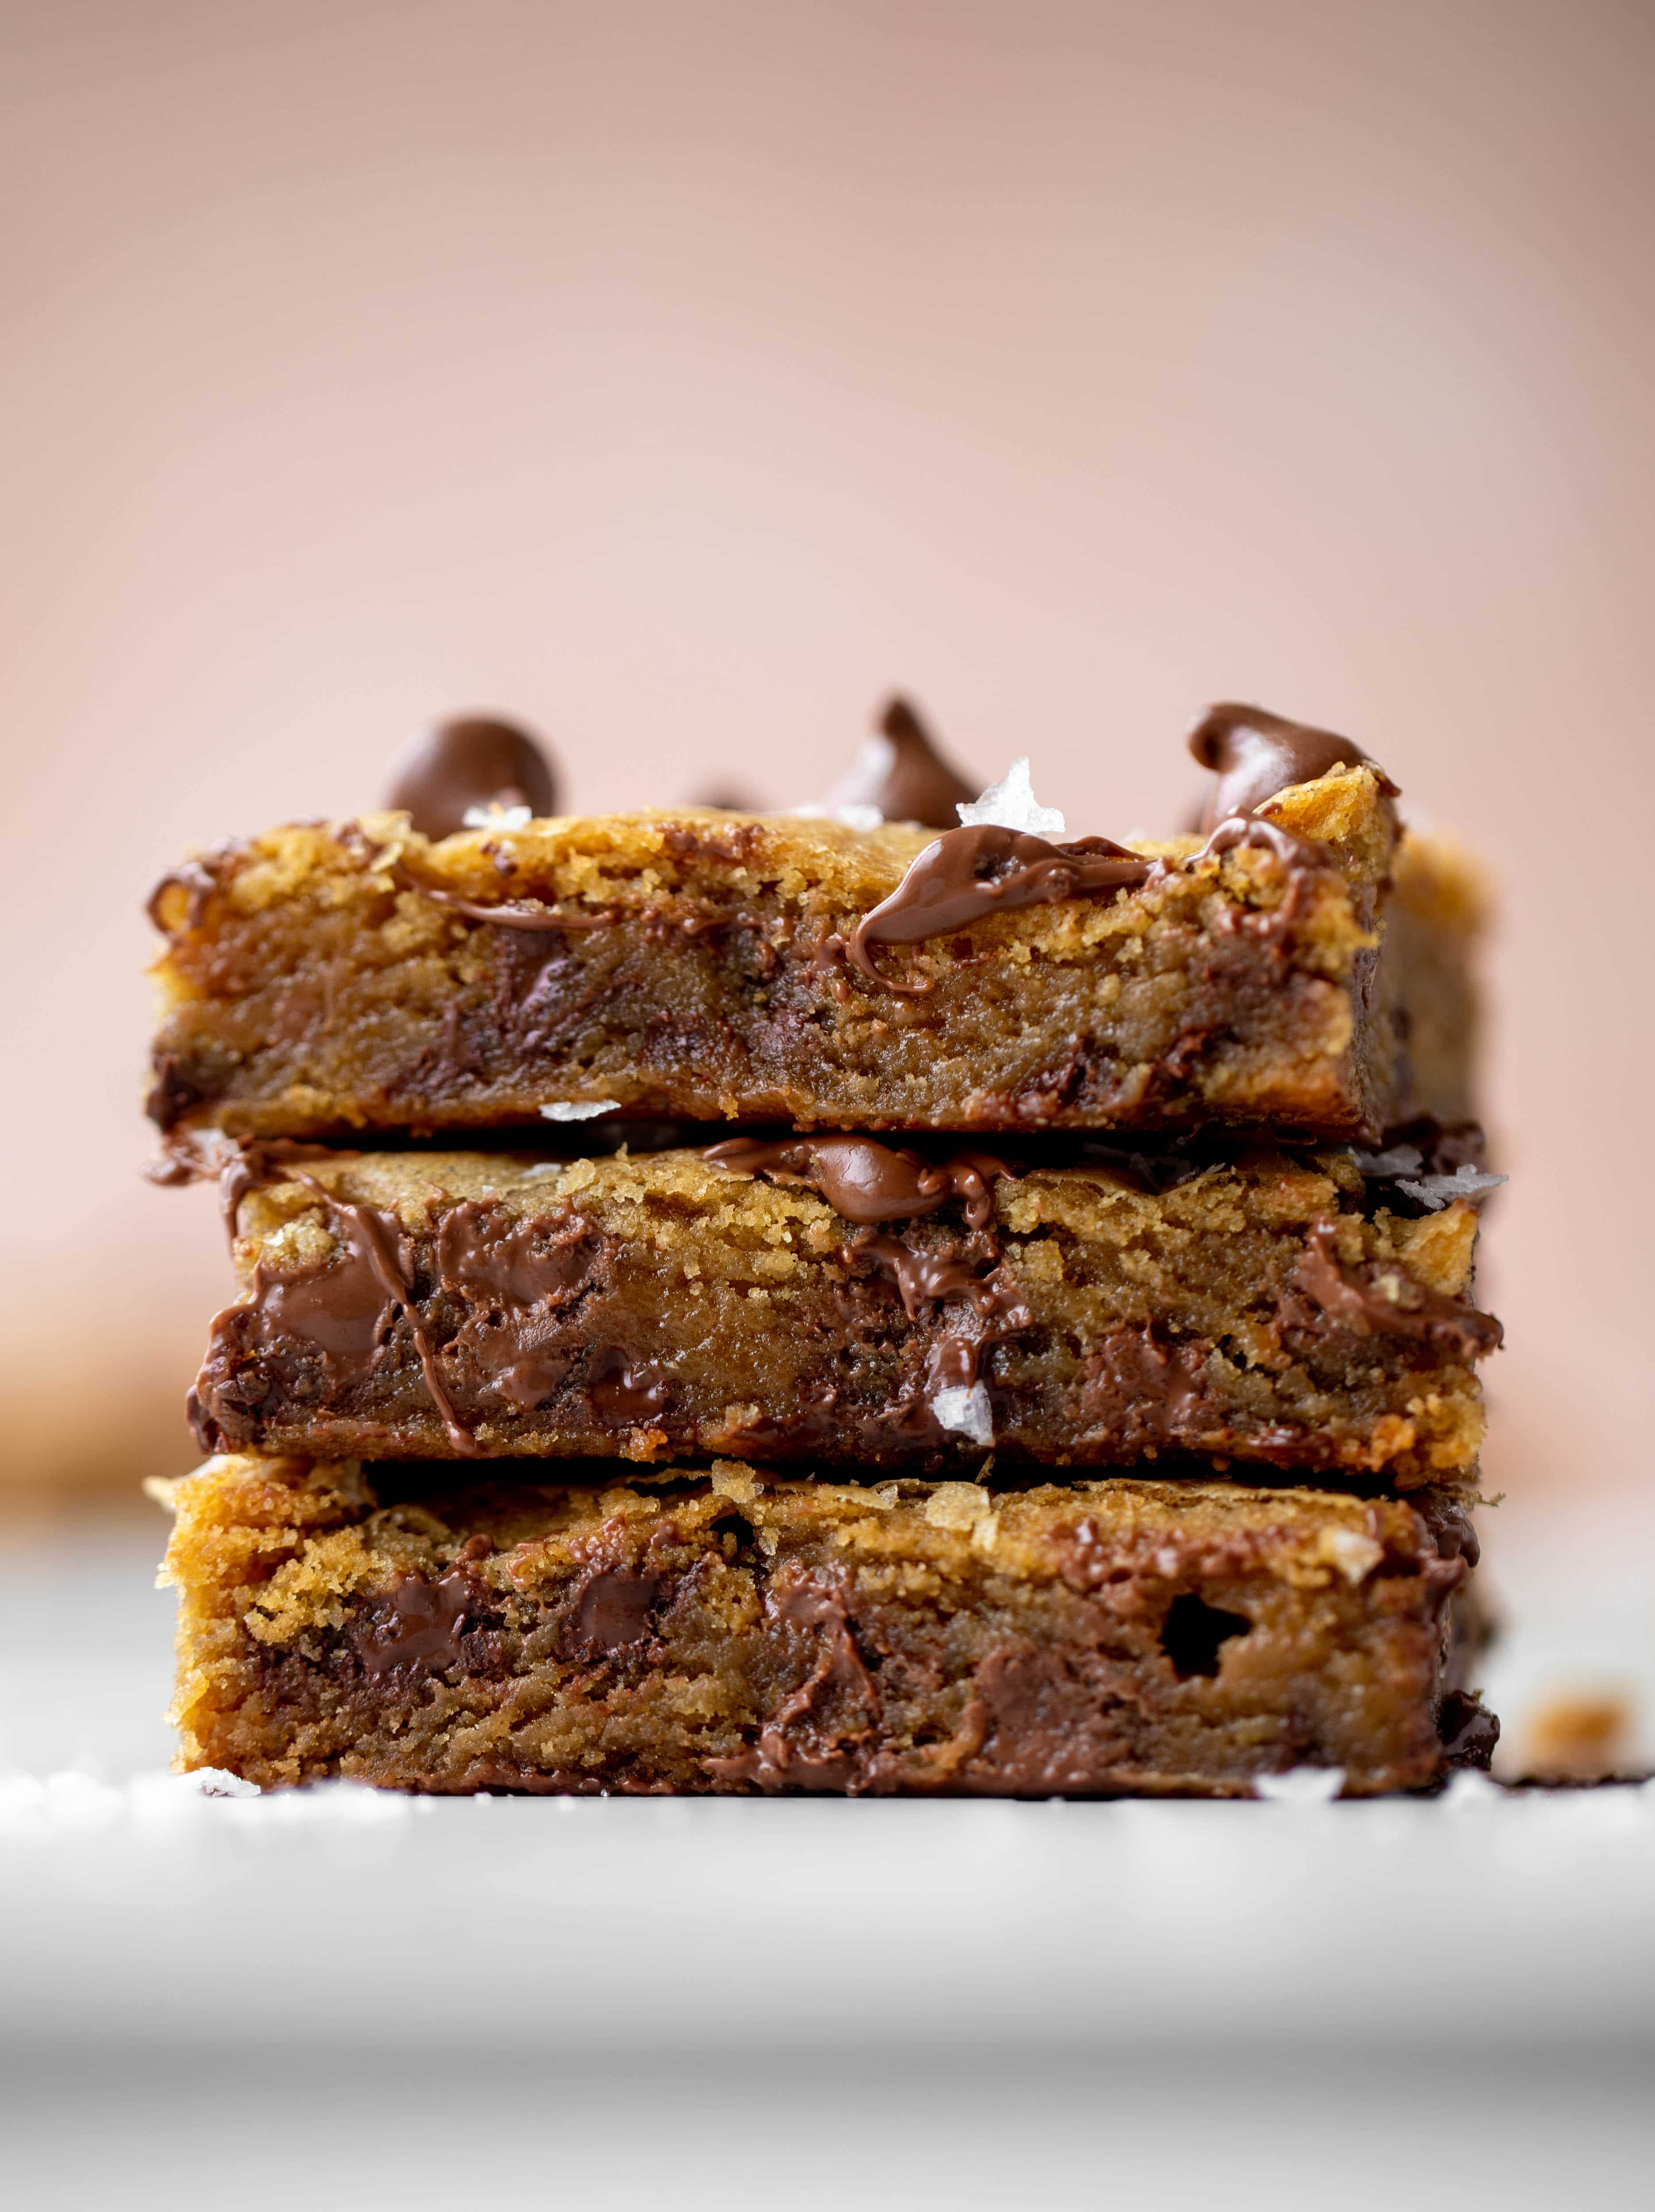 These brown butter chocolate chip cookie bars are chewy, chocolately and sprinkled with flaky salt. What else do you need in life?!